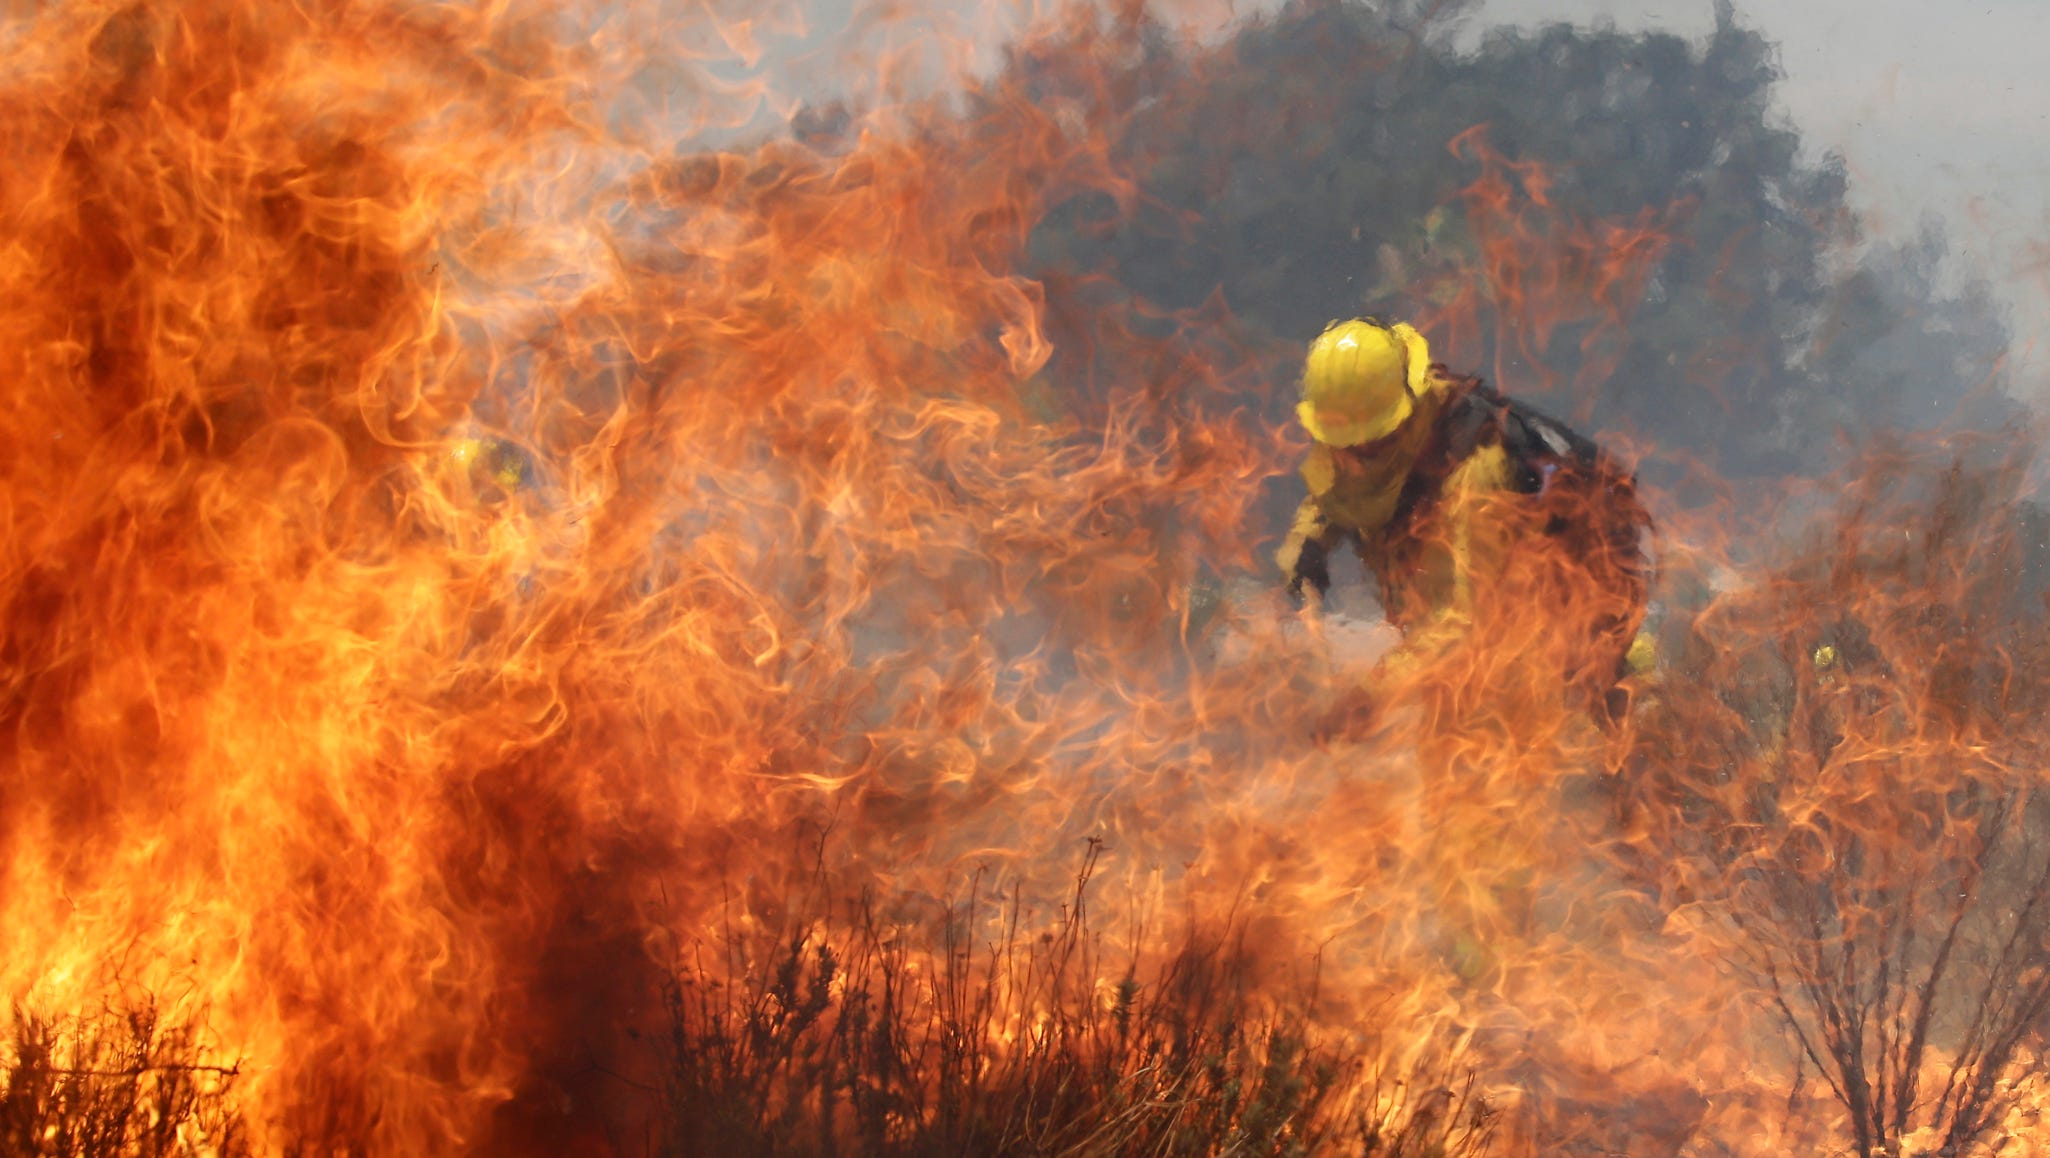 A firefighter battles a wildfire on Aug. 8 in Cabazon, Calif.